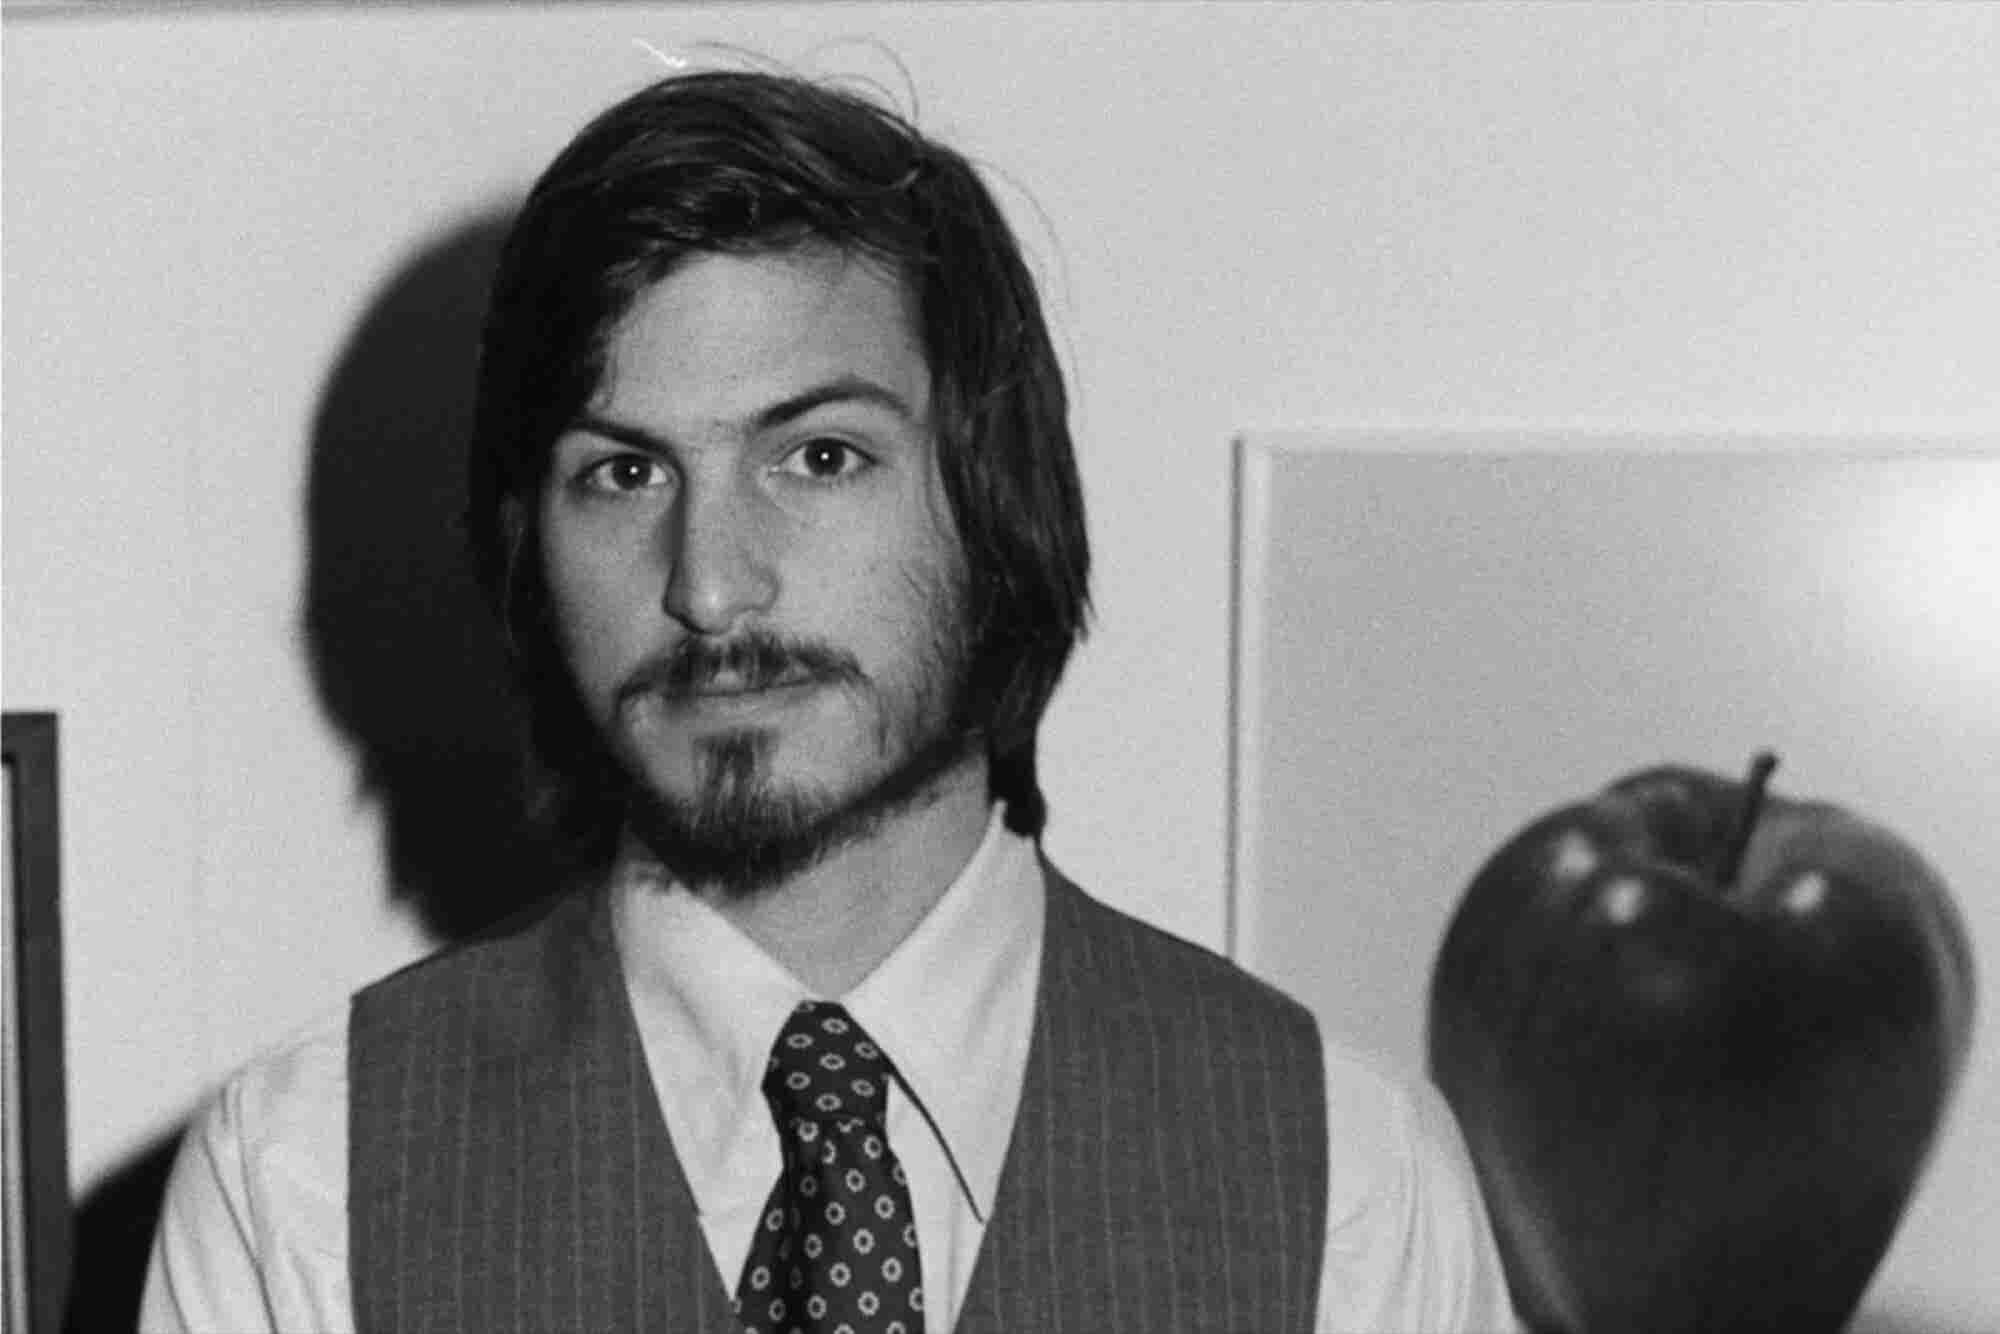 An Error-Ridden Job Application Steve Jobs Handwrote in 1973 Sold for 6 Figures at Auction